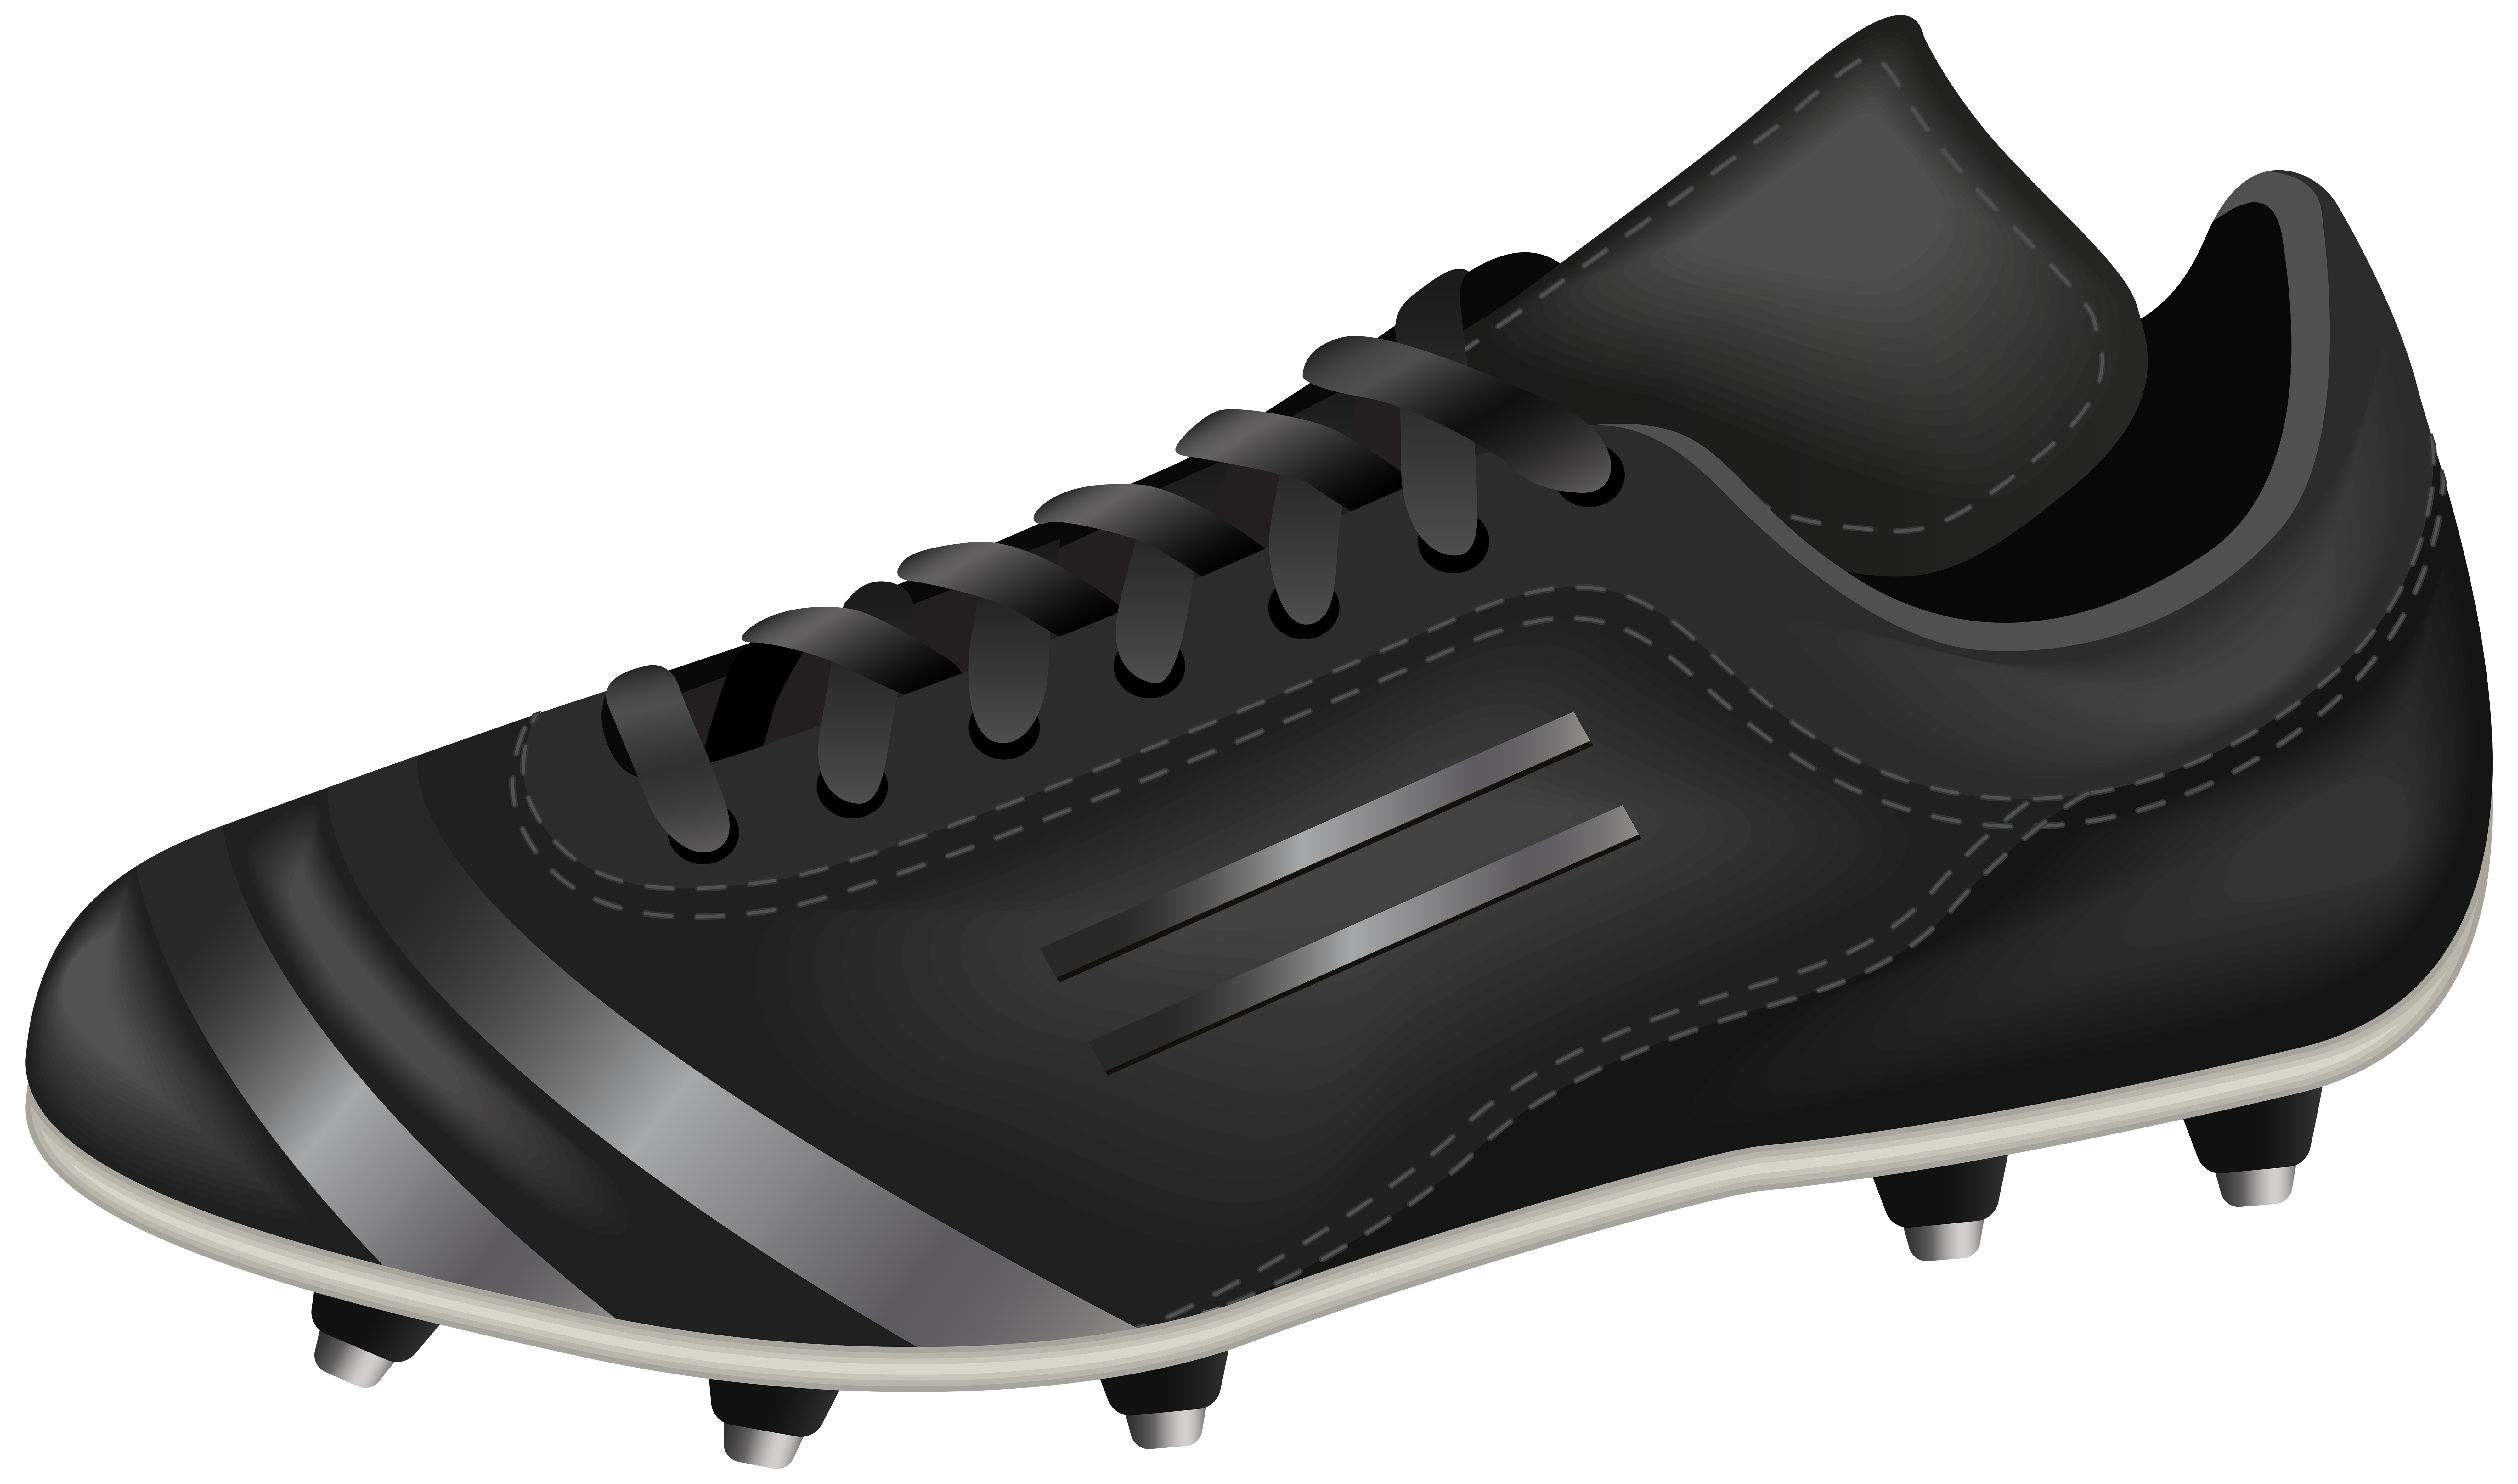 Football boots clipart - Clipground